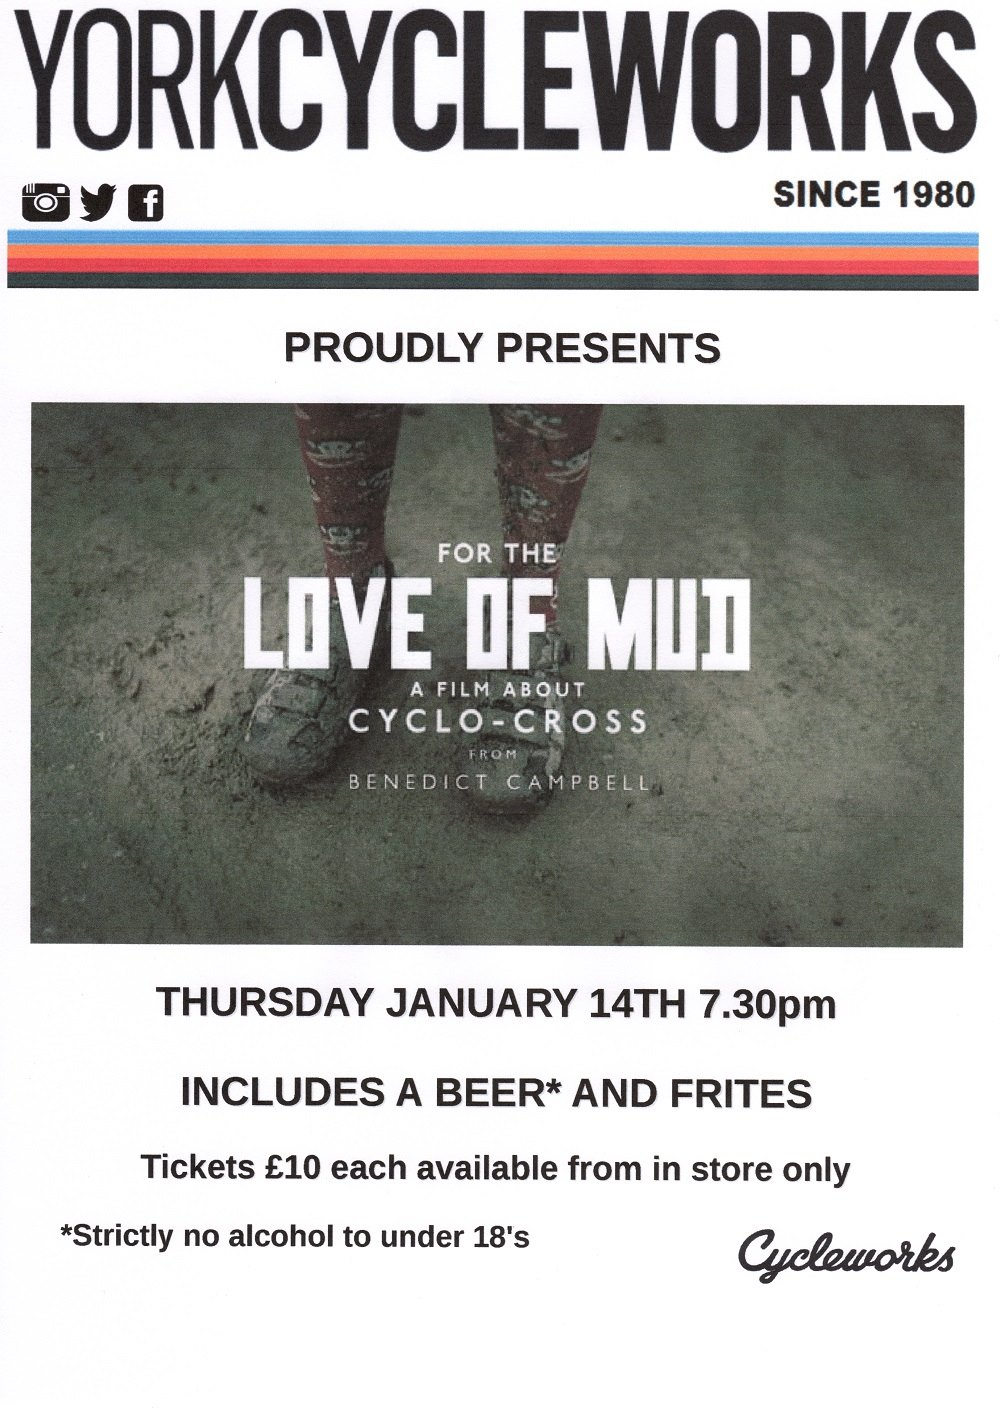 York Cycleworks film night